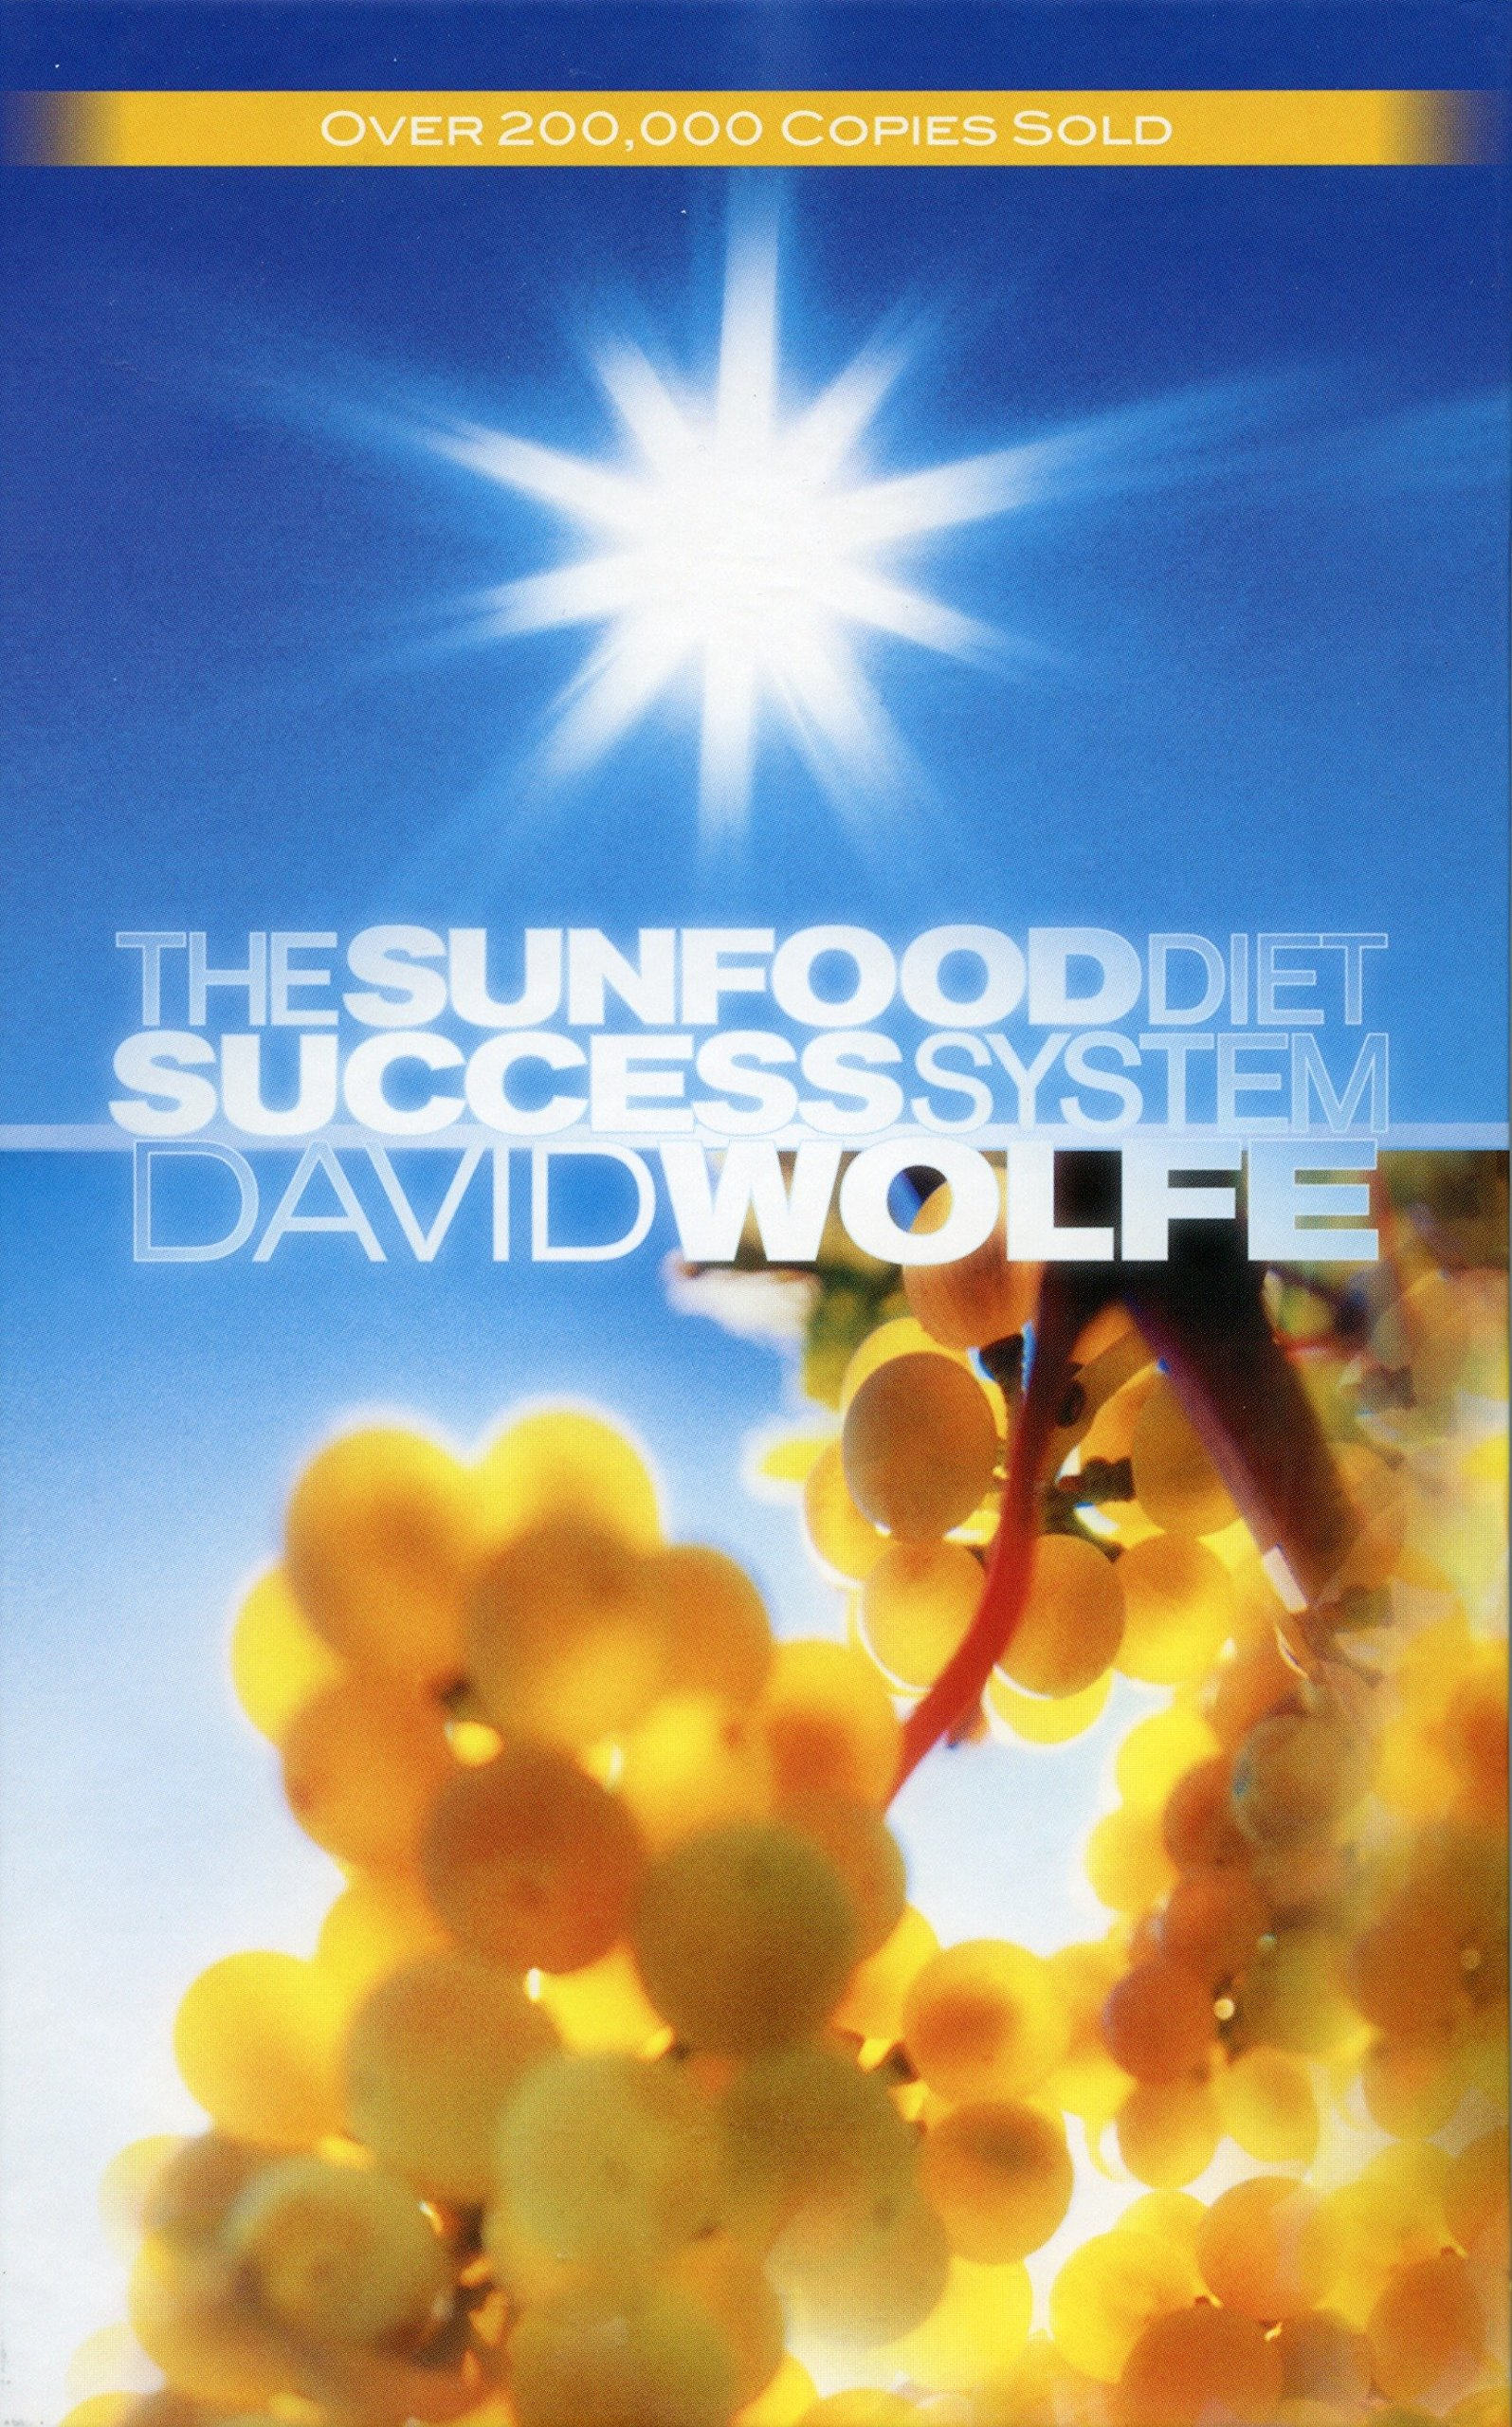 "the sunfood diet success system - by David Wolfe—Reviewed by Dan JerkeThis was my first book that got me into the ""raw movement."" It changed my life, touching every aspect of my being. I cannot express my gratitude toward David Wolfe for creating this masterpiece. Anyone seeking a life of optimism, joy, and success on a personal level should own The Sunfood Diet Success System!Wolfe's book contains 36 chapters of health transformation. Only ten or so of these specifically deal with the diet, while the book's key focus is on the mental transformation required. Each chapter has exercises at the end for the physical (diet) and mental changes. As recommended by David, keeping a journal and log of your diet will help with the transformation. The book begins with six chapters that ask you to take a look into your life. ""Beliefs,"" ""Goals,"" ""Thoughts are Things,"" and ""Faith"" are a few of the chapters that promote your well-being on a spiritual level.Starting with chapter 7, ""The Sunfood Diet,"" the book introduces us to the diet of uncooked fruits, vegetables, and nuts. For those of you who have been wondering about this lifestyle, it's eating foods in their natural, unadulterated state. It is a step further than veganism, being called ""raw-veganism."" David thoroughly covers all aspects of eating raw. Items discussed are detoxification, food-combining, the SunFood Triangle (new pyramid), hybridized food, common questions, myths, and the wonders of a diet free of toxicity.""Your idea of the world (what you believe the world is) manifests everything in your life. When you change your idea of the world, the world itself changes. Essentially, your mission isn't to set the world right, but simply to set yourself right. The world does not change, we change."""